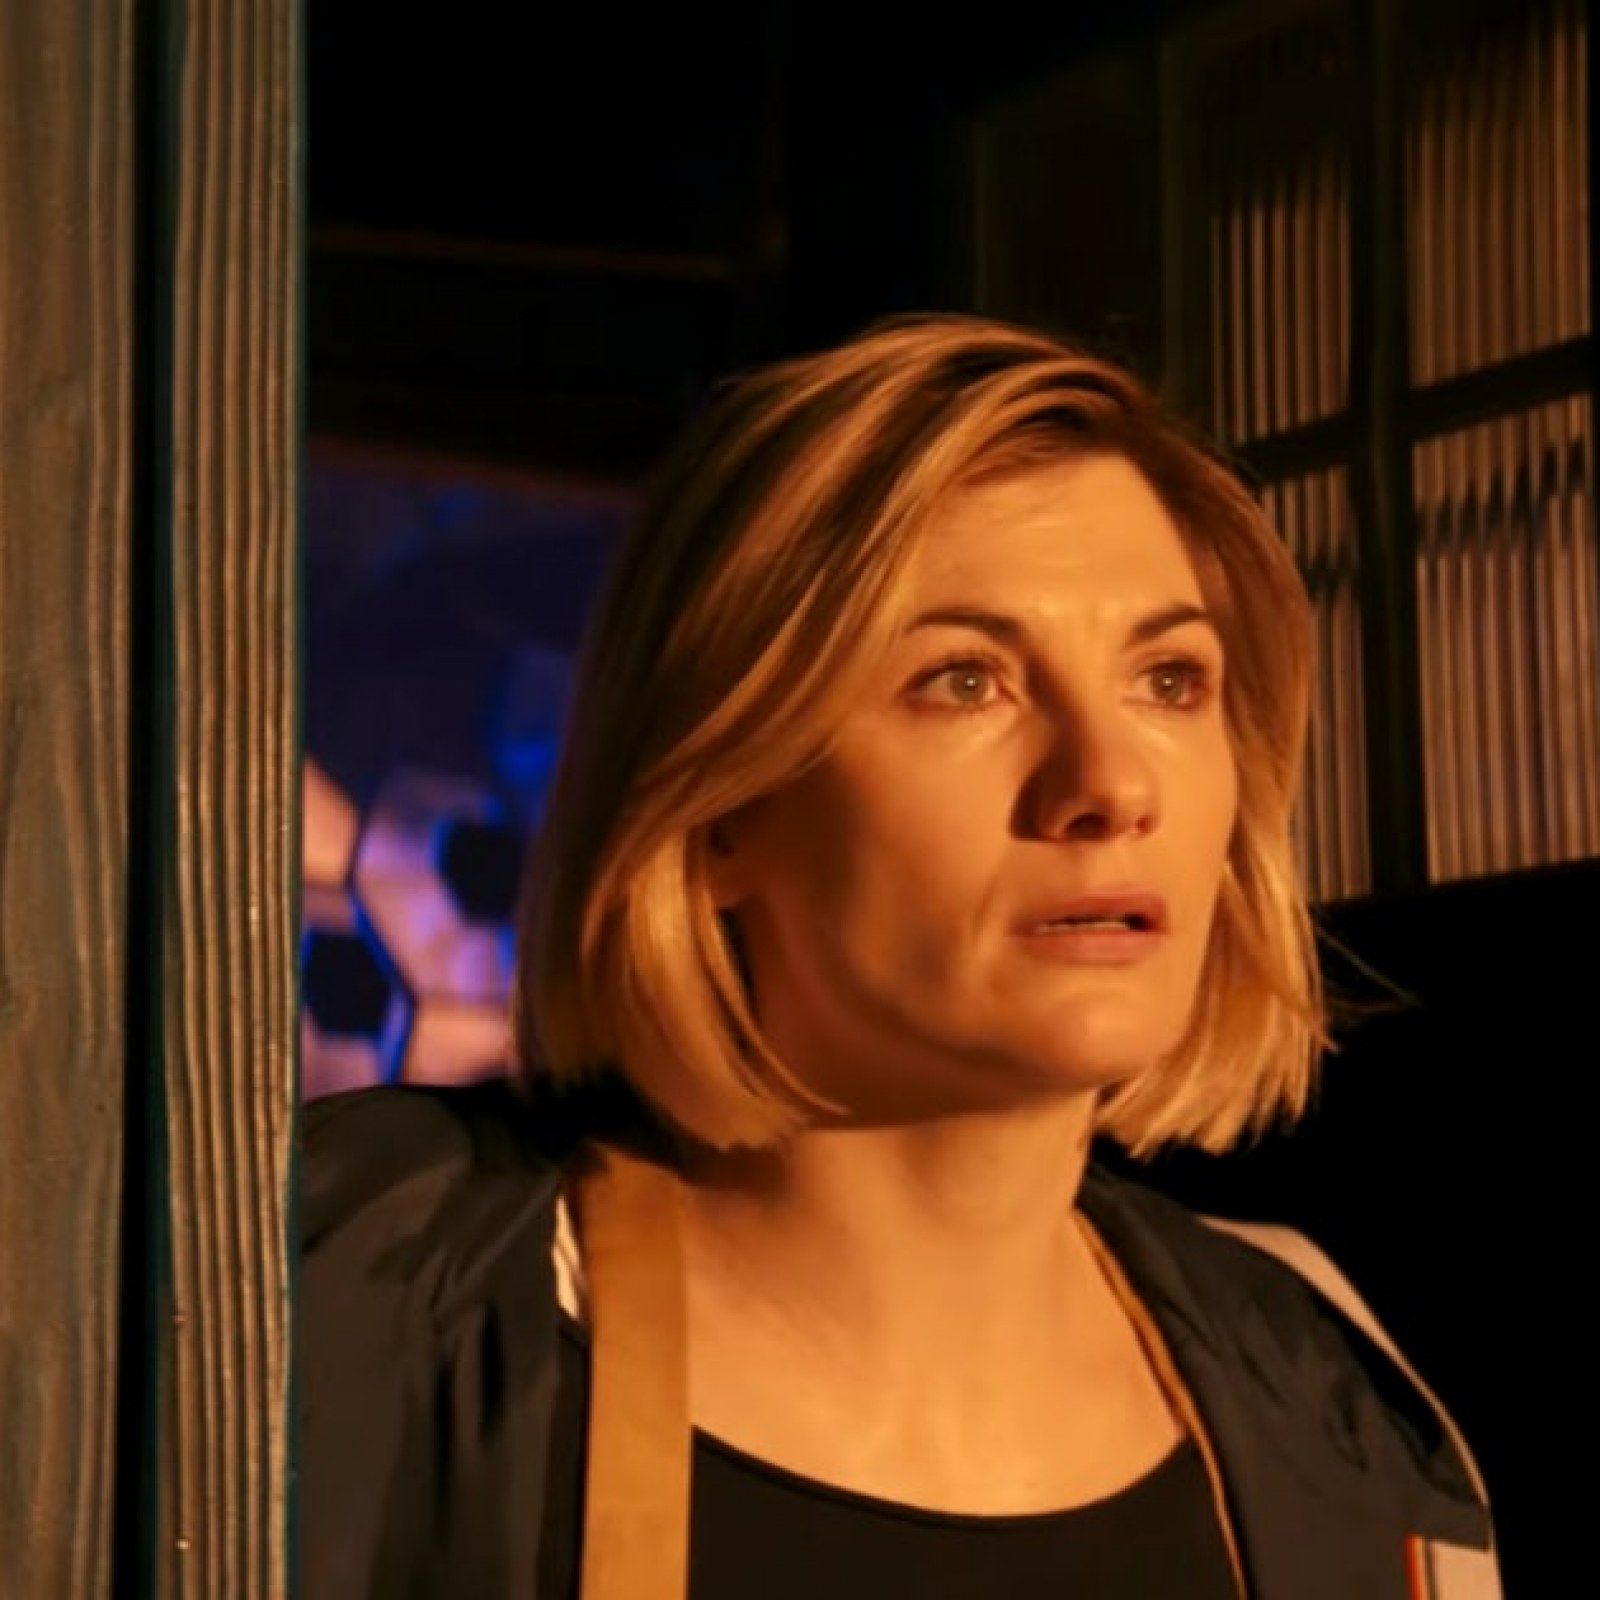 Doctor Who Season 12 Jodie Whittaker And Chris Chibnall Address